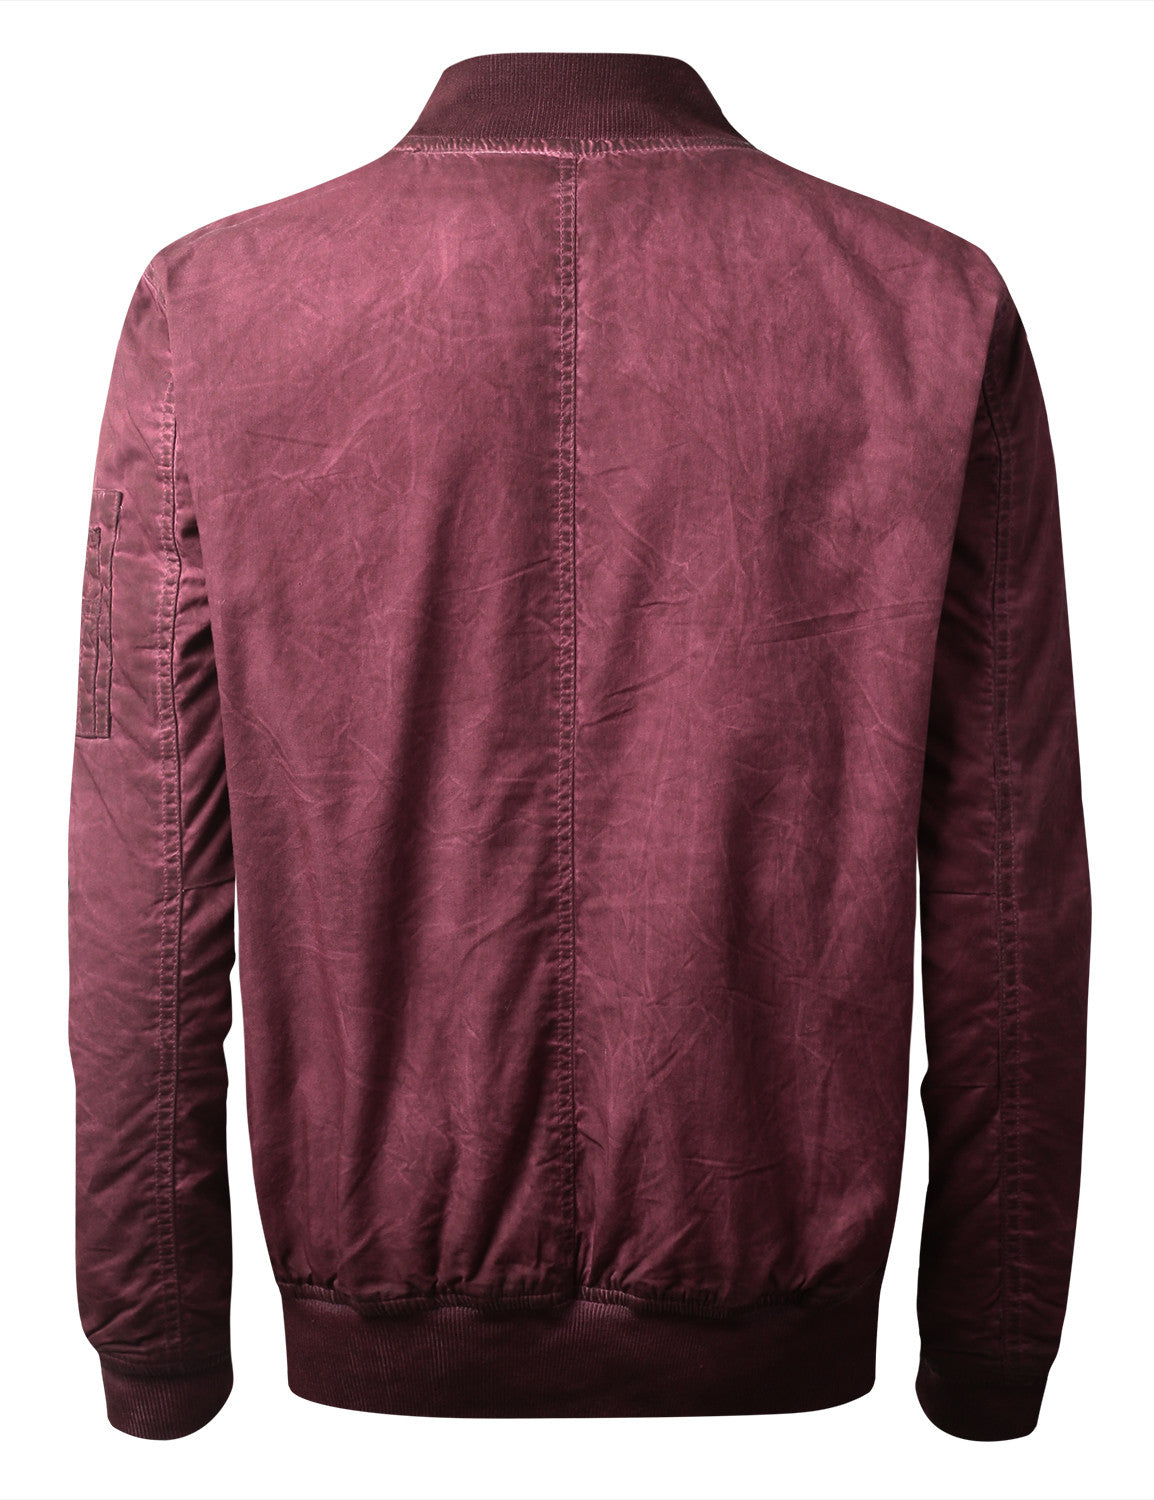 BURGUNDY Oil Wash Bomber Jacket - URBANCREWS